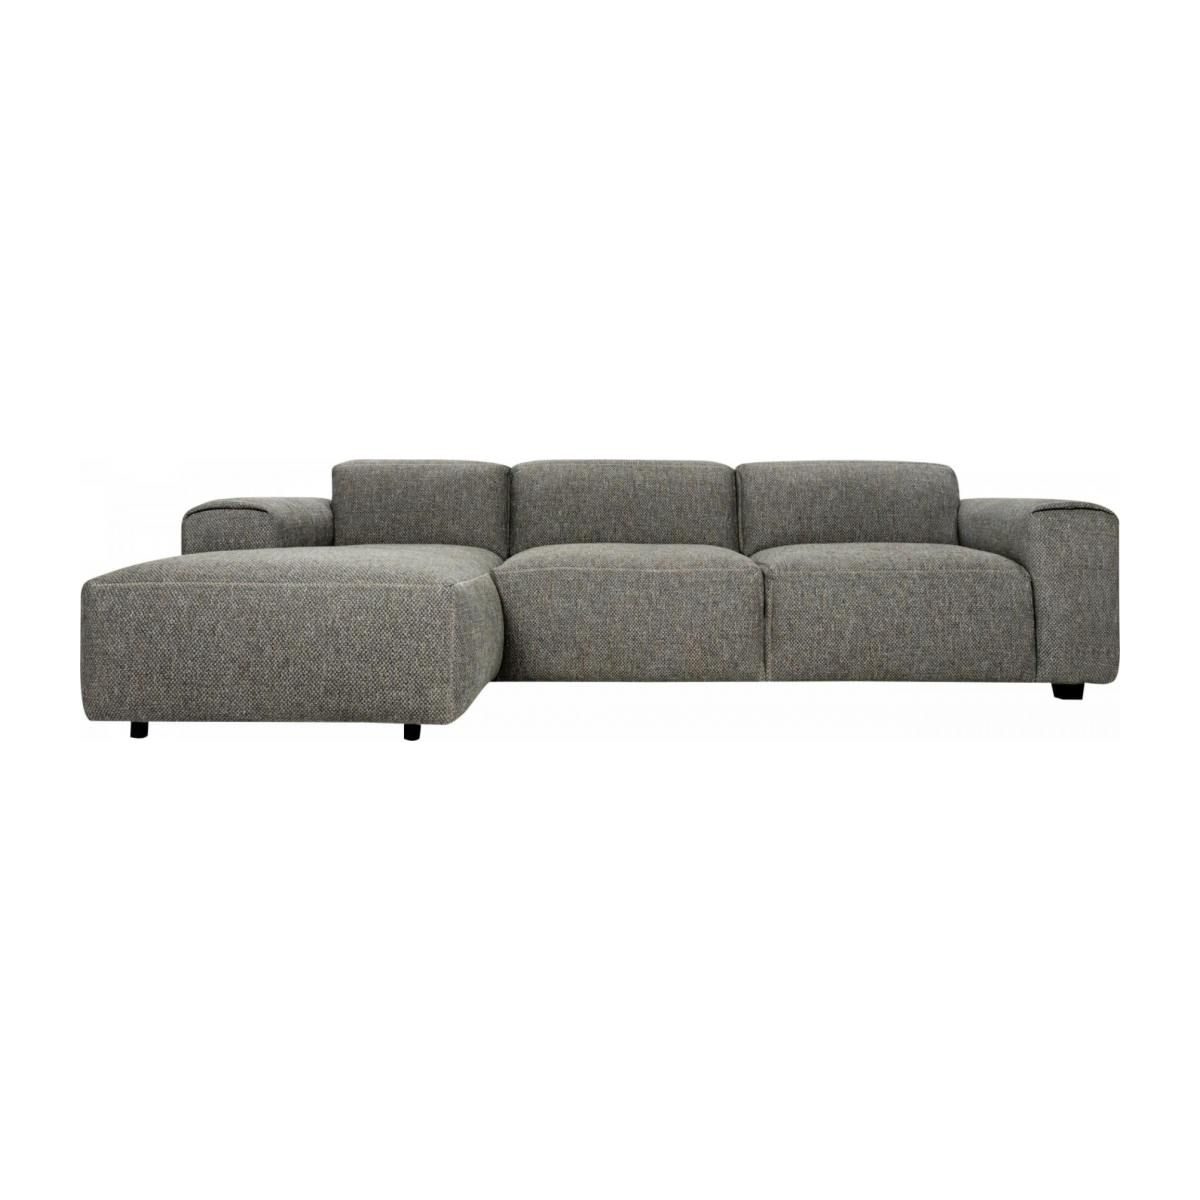 3-Sitzer Sofa mit Chaiselongue links aus Stoff Bellagio night black n°1